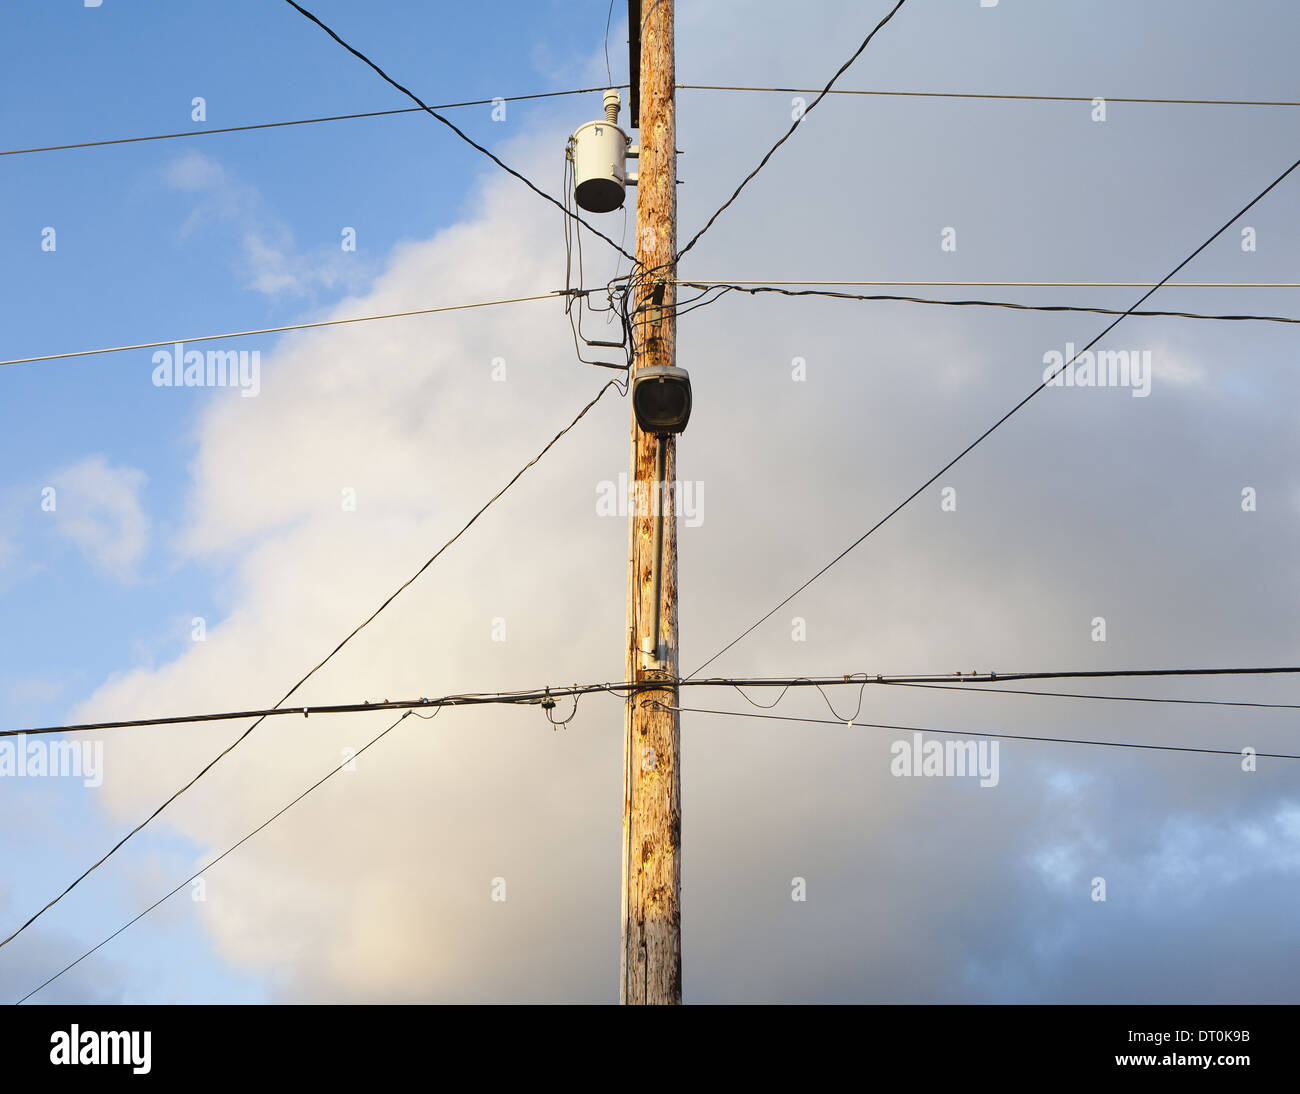 Telephone Pole Wires Stock Photos & Telephone Pole Wires Stock ...